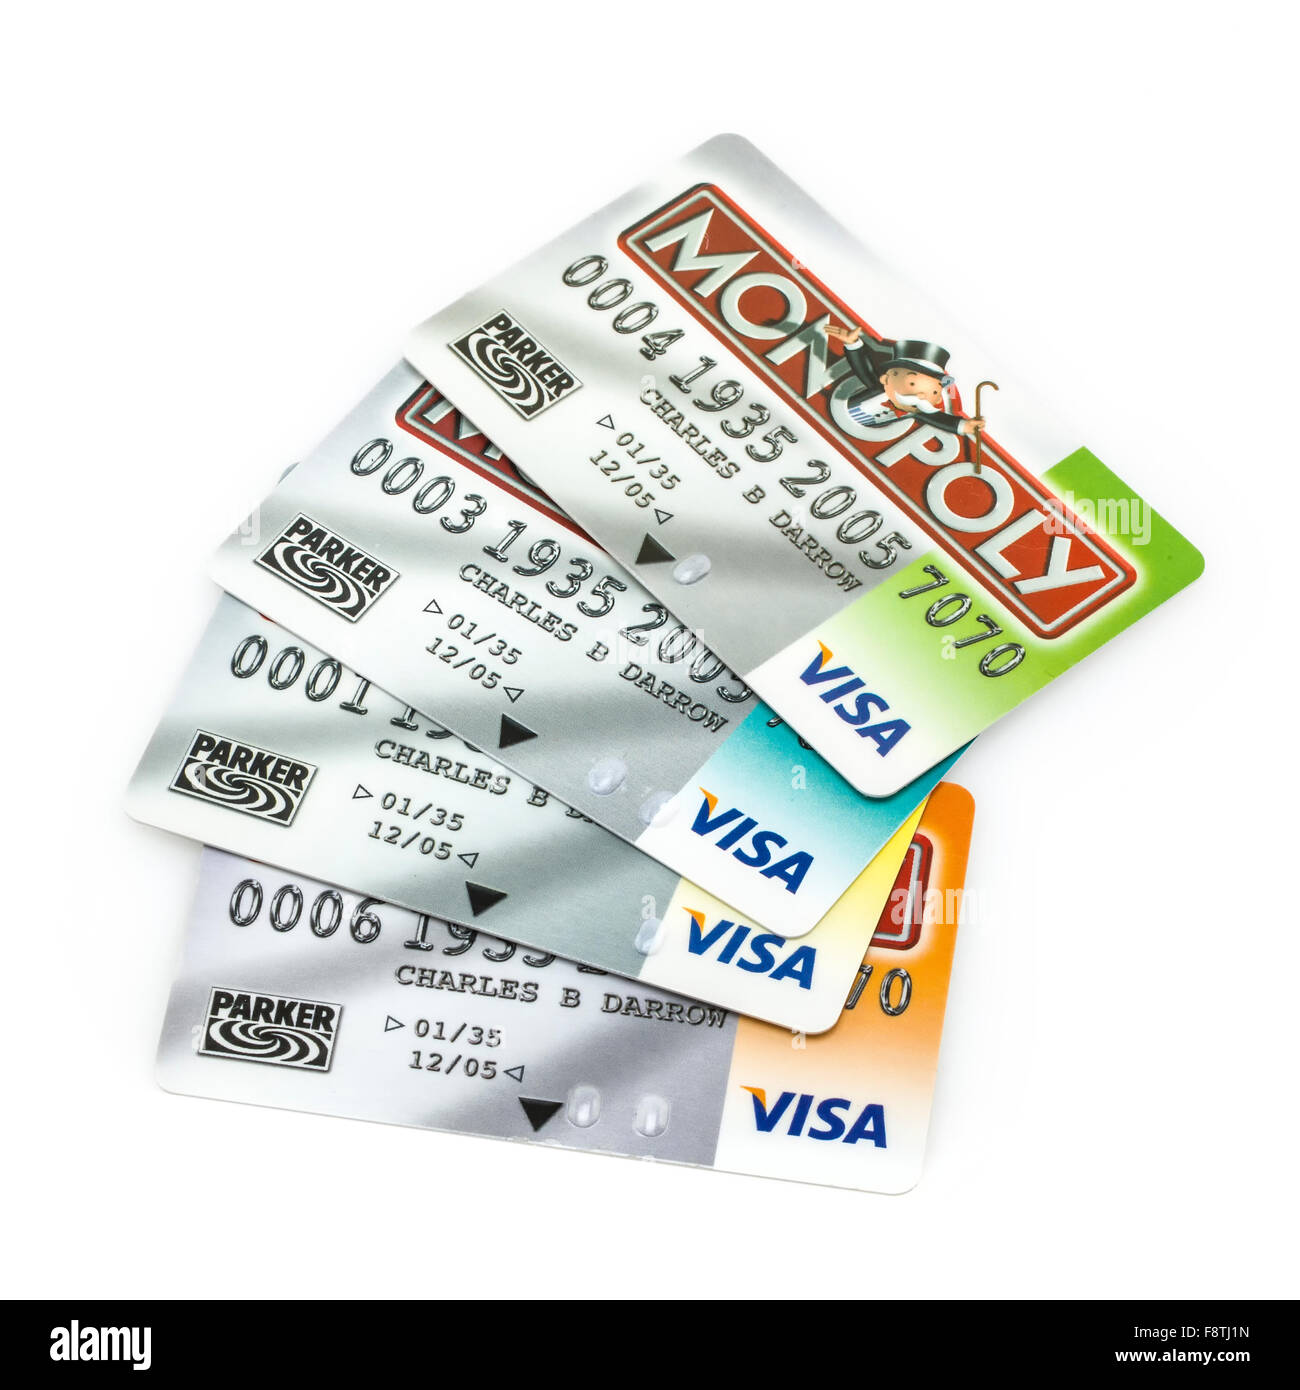 Group Of Four Monopoly Visa Credit Cards on a White Background - Stock Image